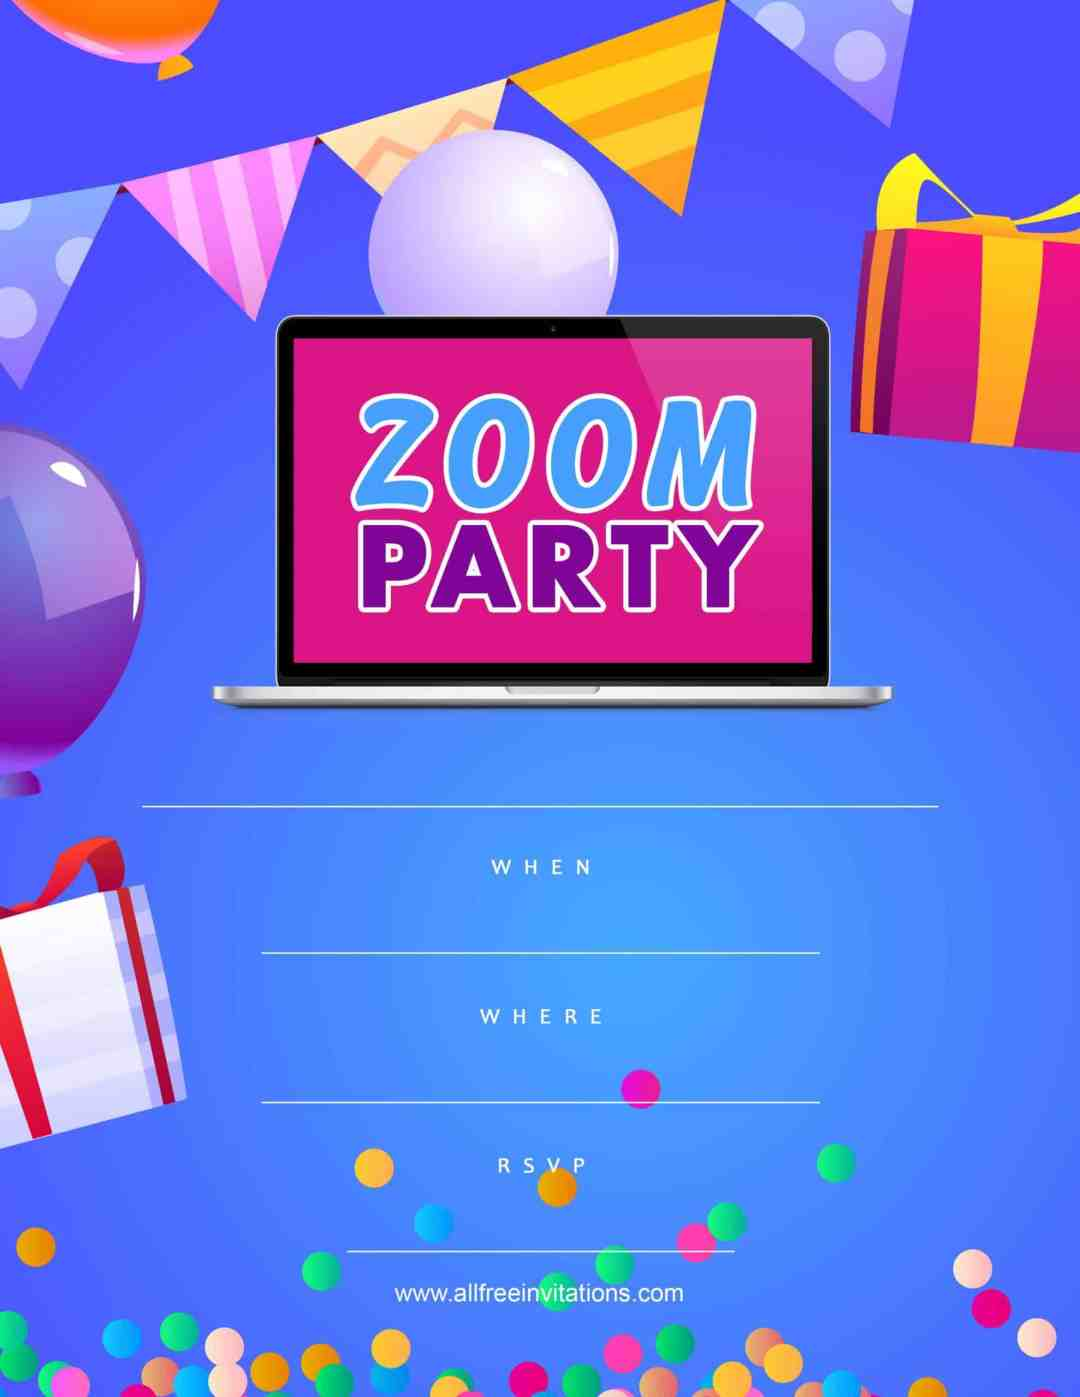 Zoom party invitation - blue purple pink balloons - All Free Invitations